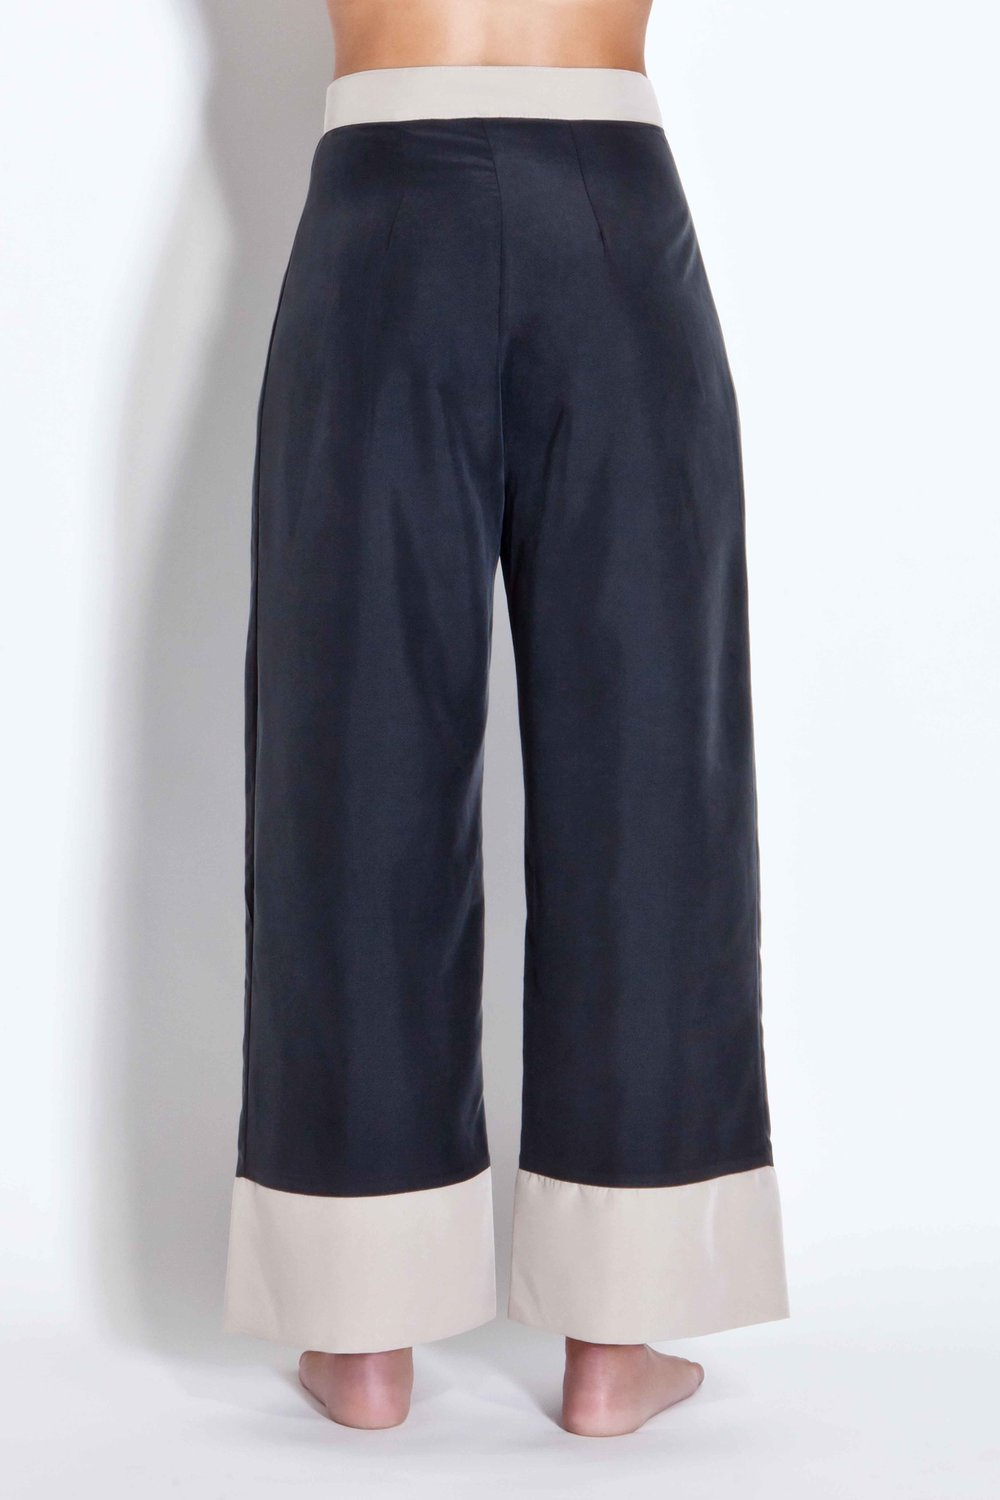 Two-toned trousers - Black